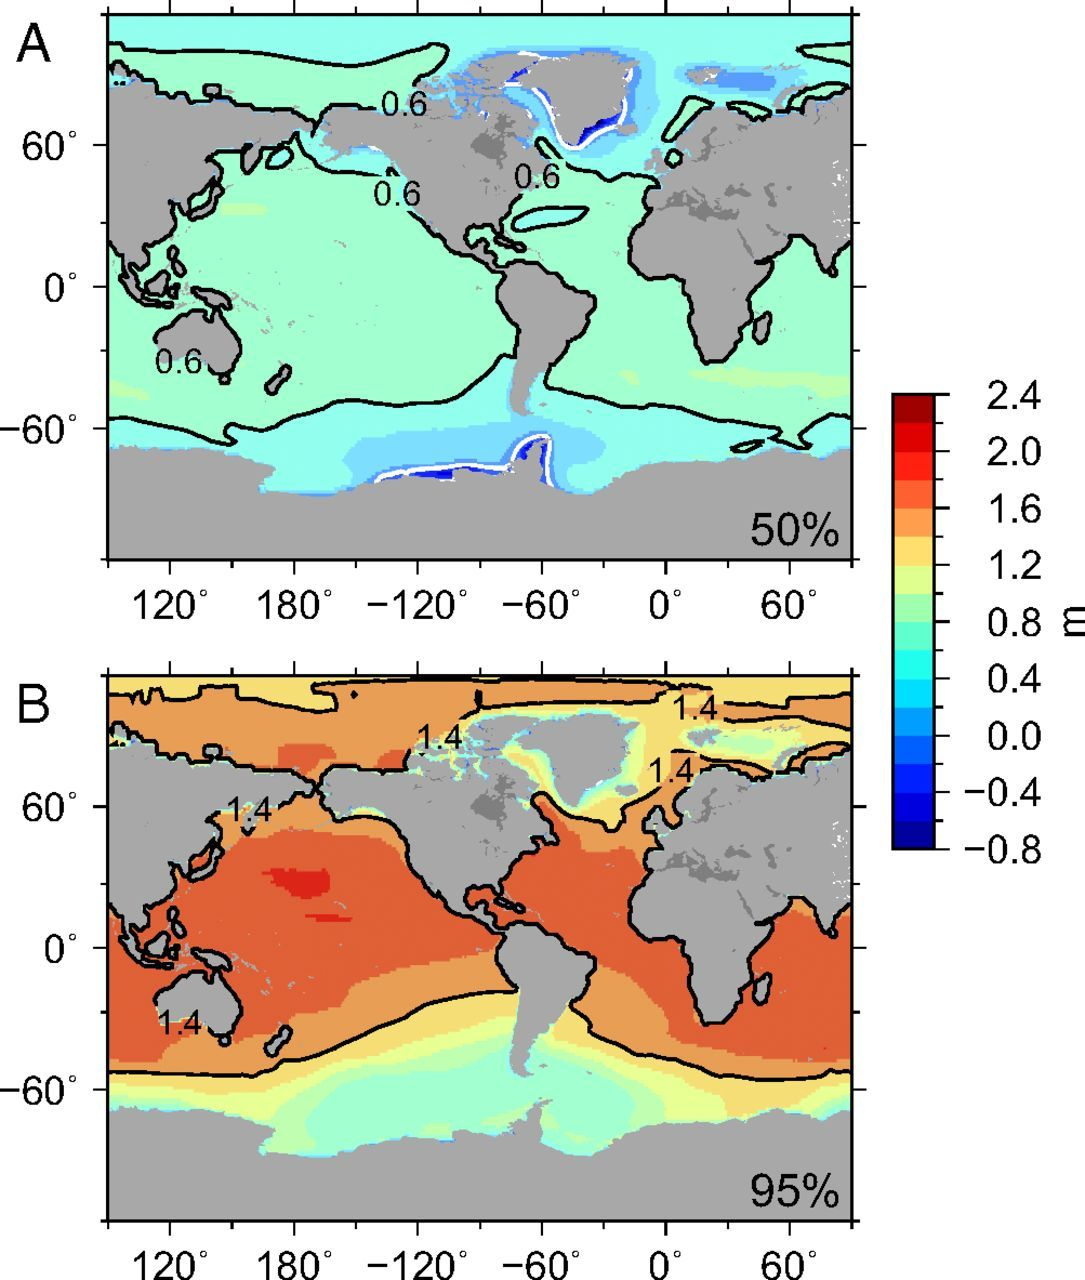 Regional sea level rise under 2 and 5 degree temperature scenarios regional sea level rise under 2 and 5 degree temperature scenarios map climatechange gumiabroncs Gallery